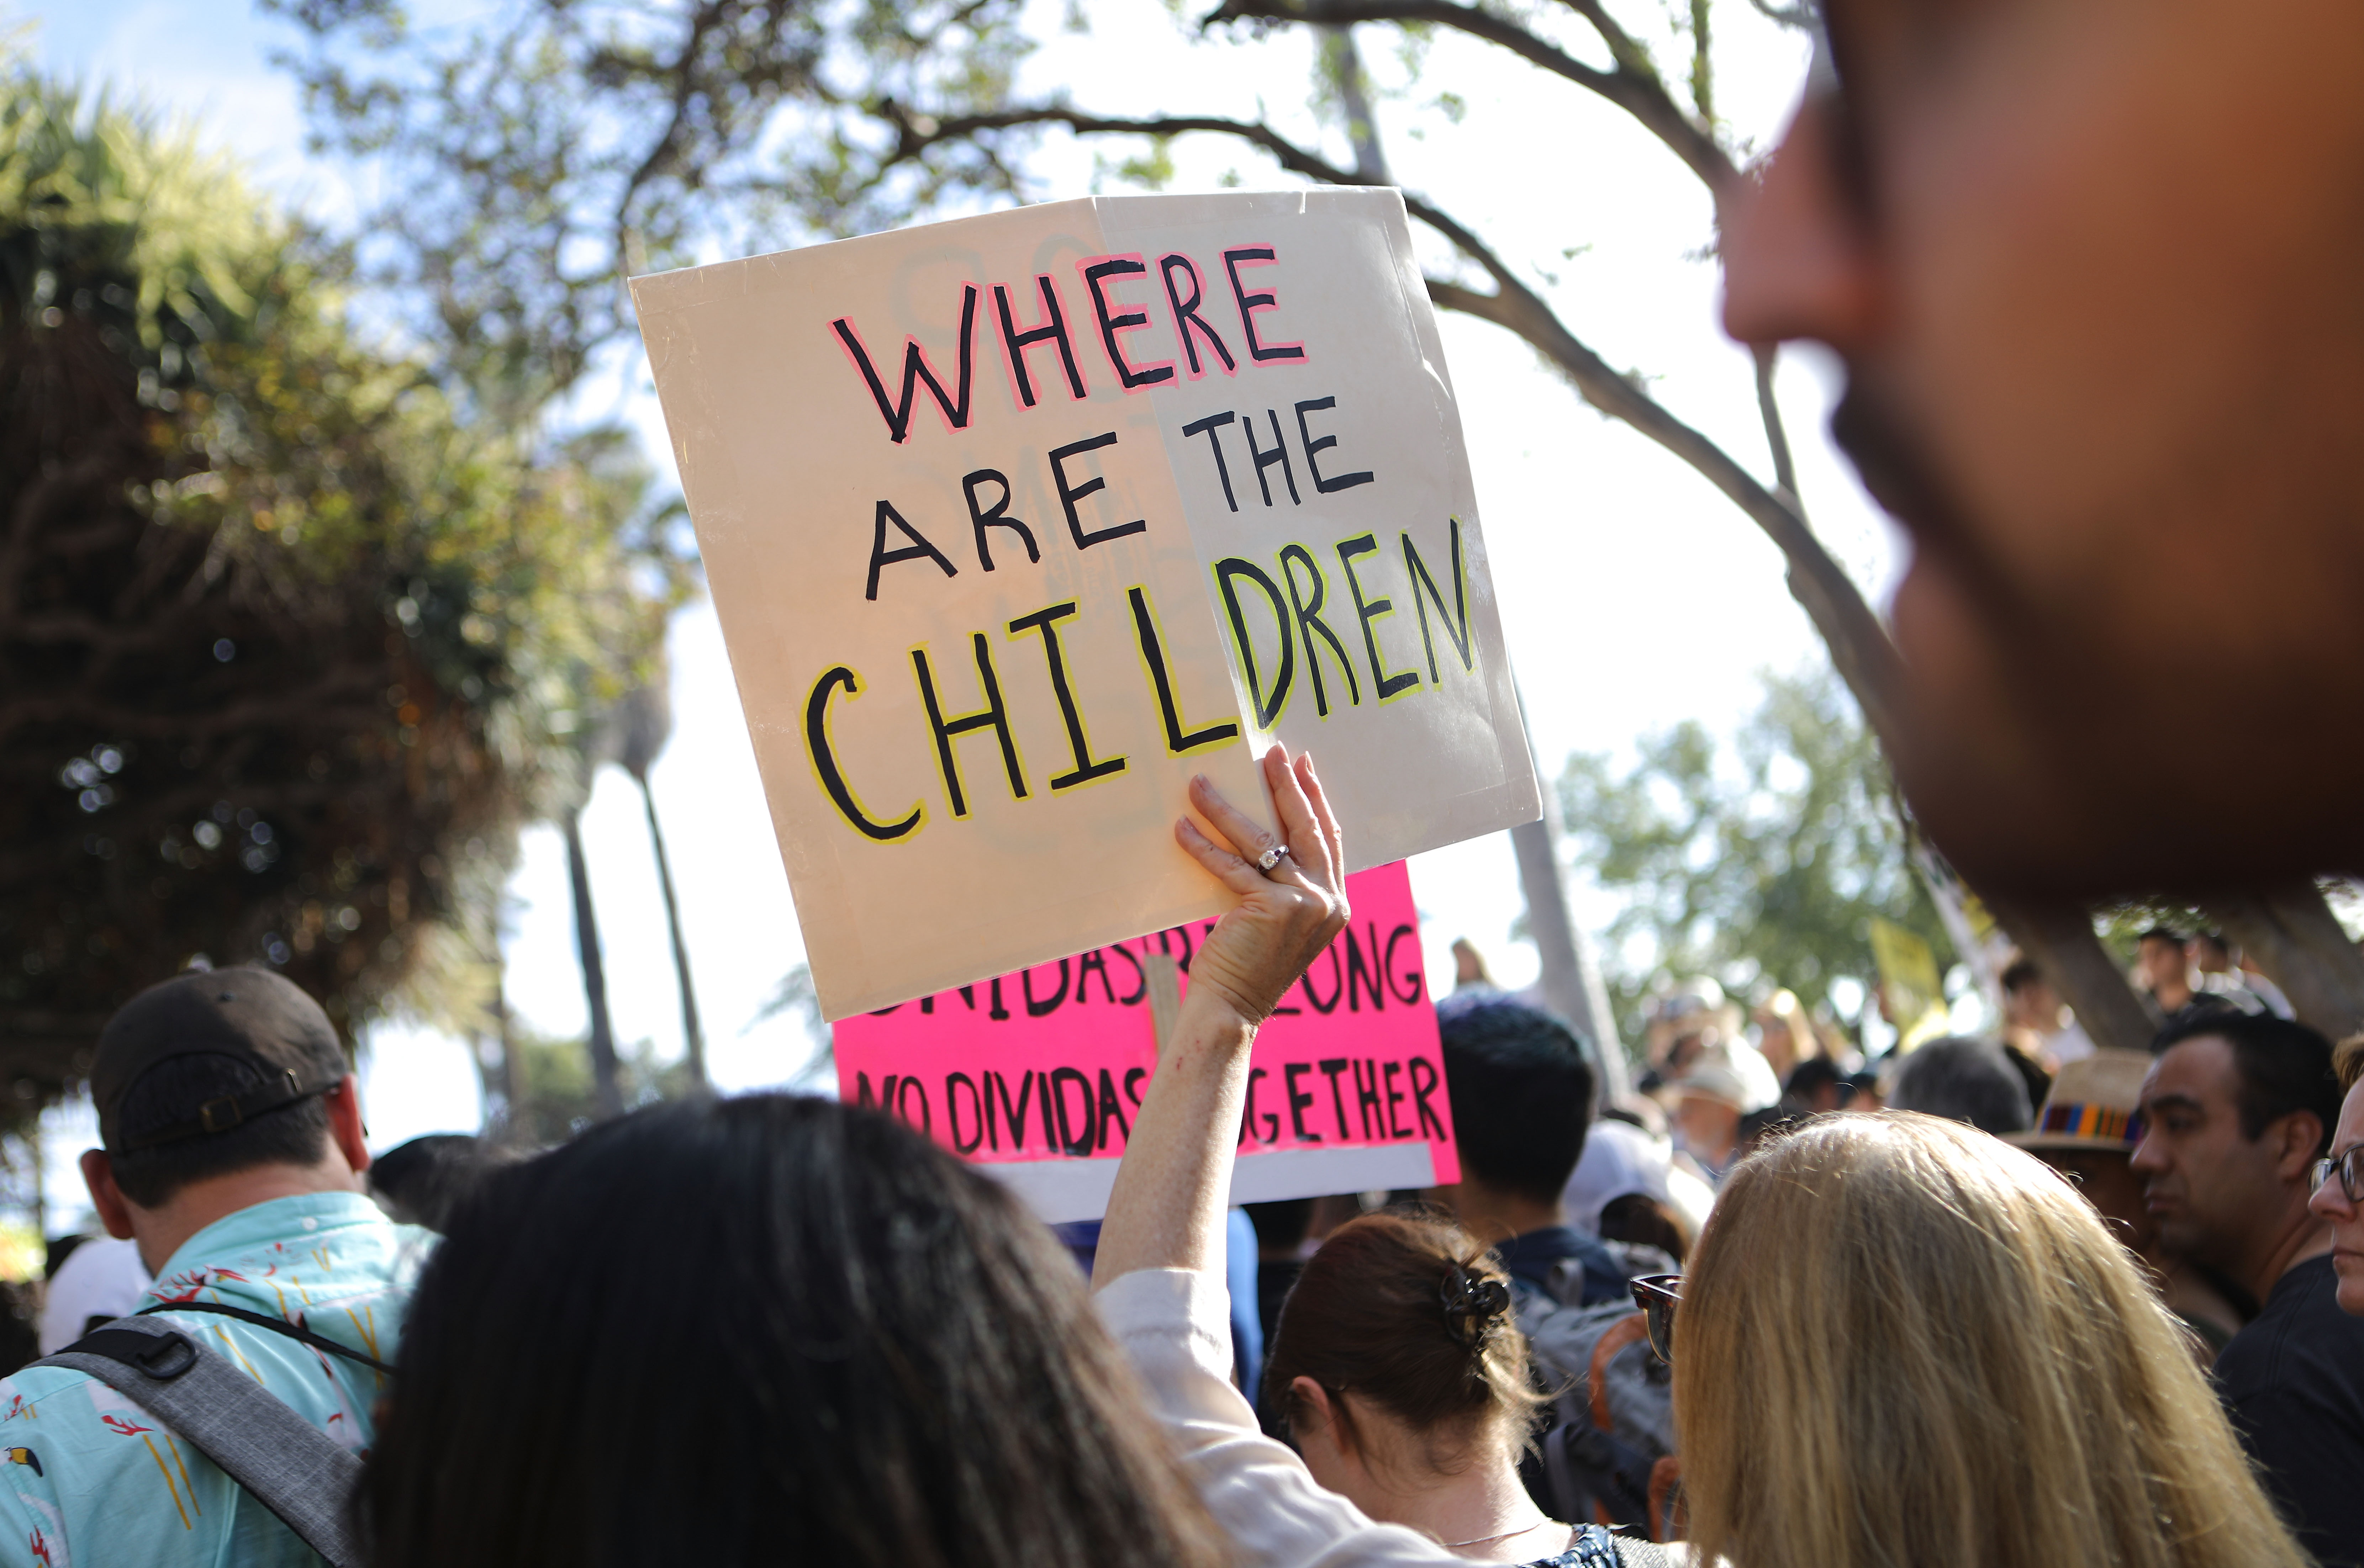 Families Belong Together protest underway in more than 700 cities